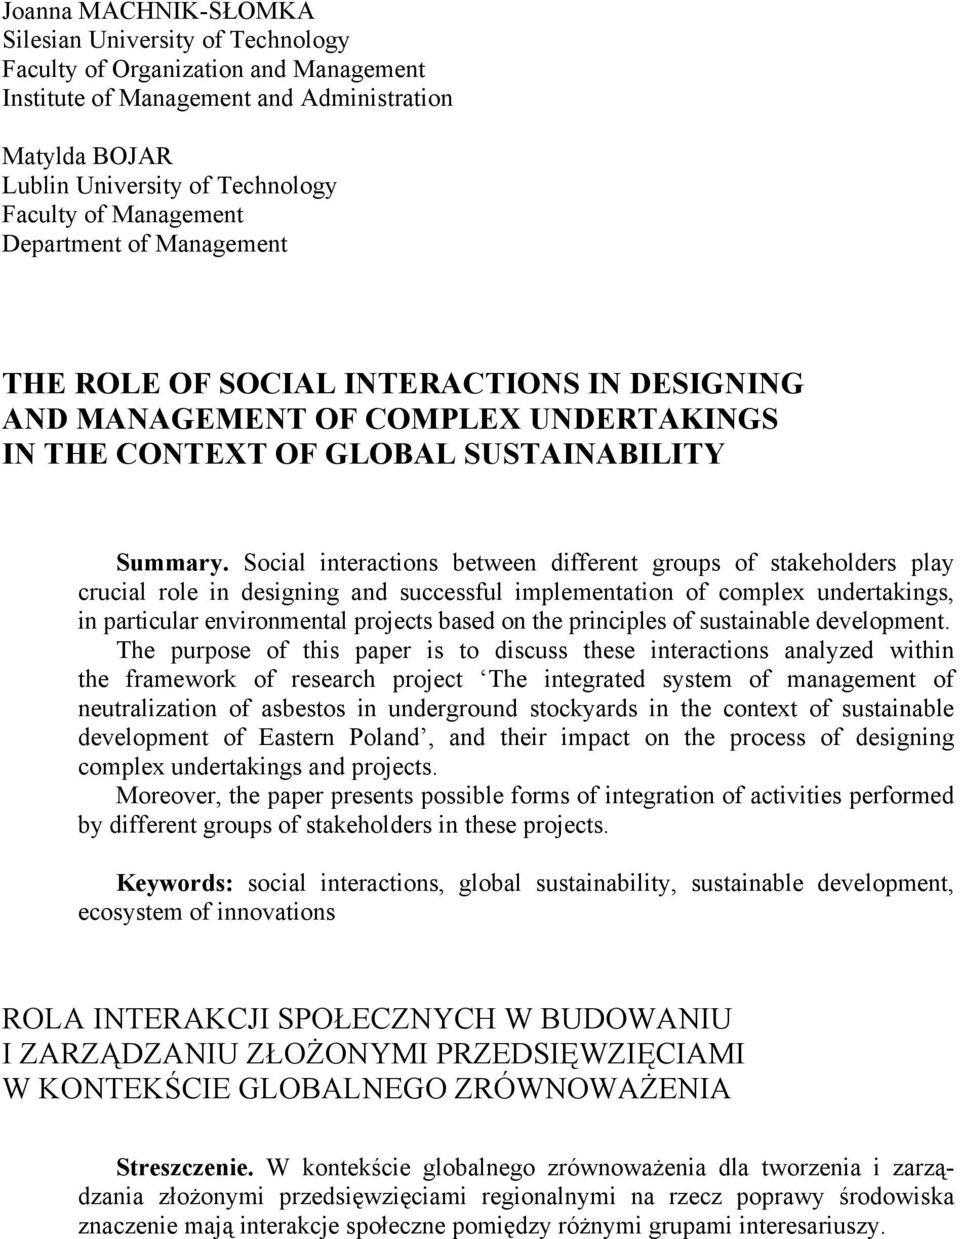 Social interactions between different groups of stakeholders play crucial role in designing and successful implementation of complex undertakings, in particular environmental projects based on the